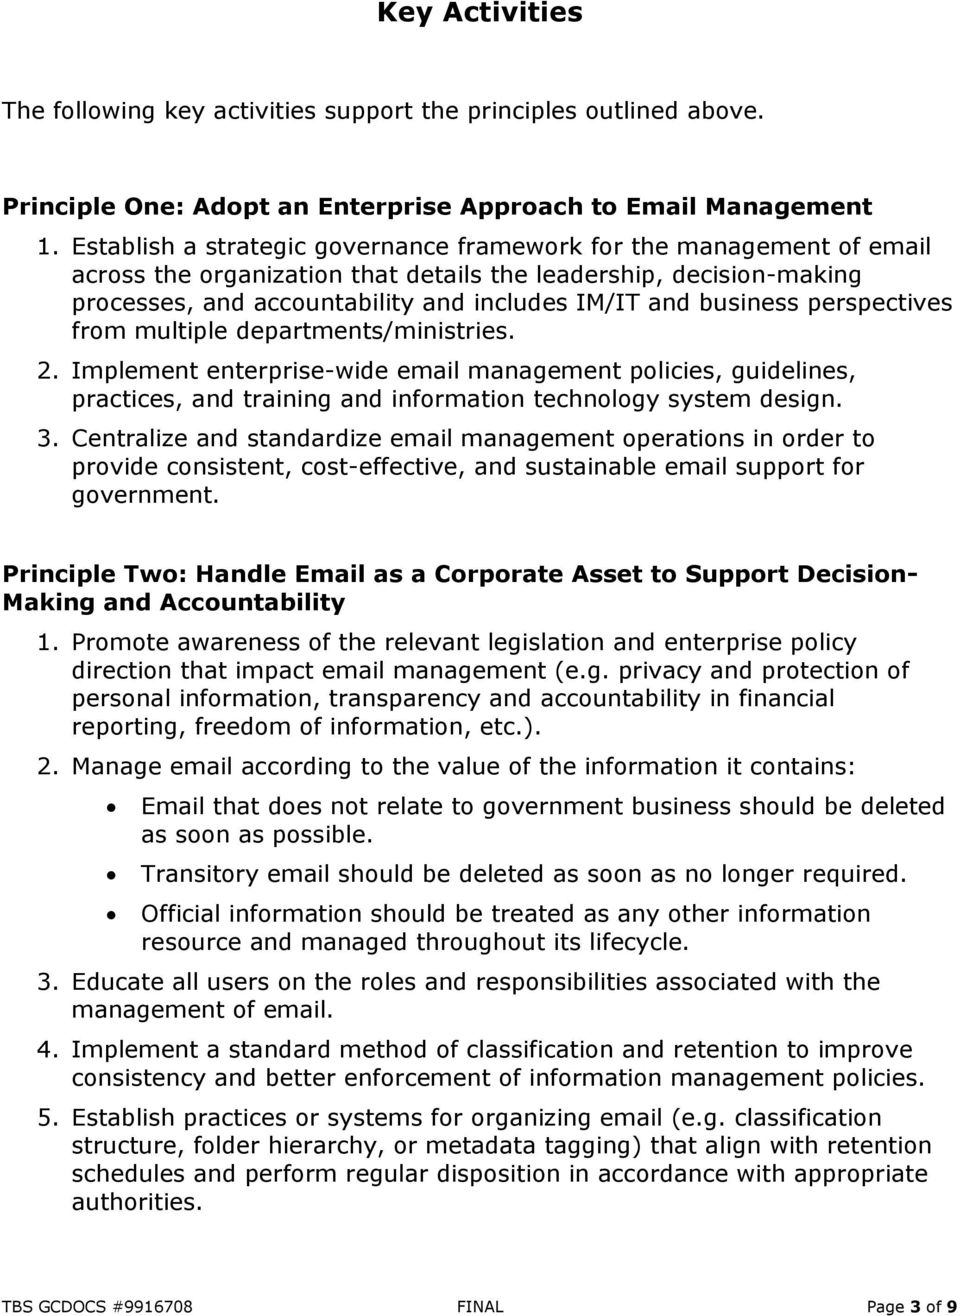 business perspectives from multiple departments/ministries. 2. Implement enterprise-wide email management policies, guidelines, practices, and training and information technology system design. 3.